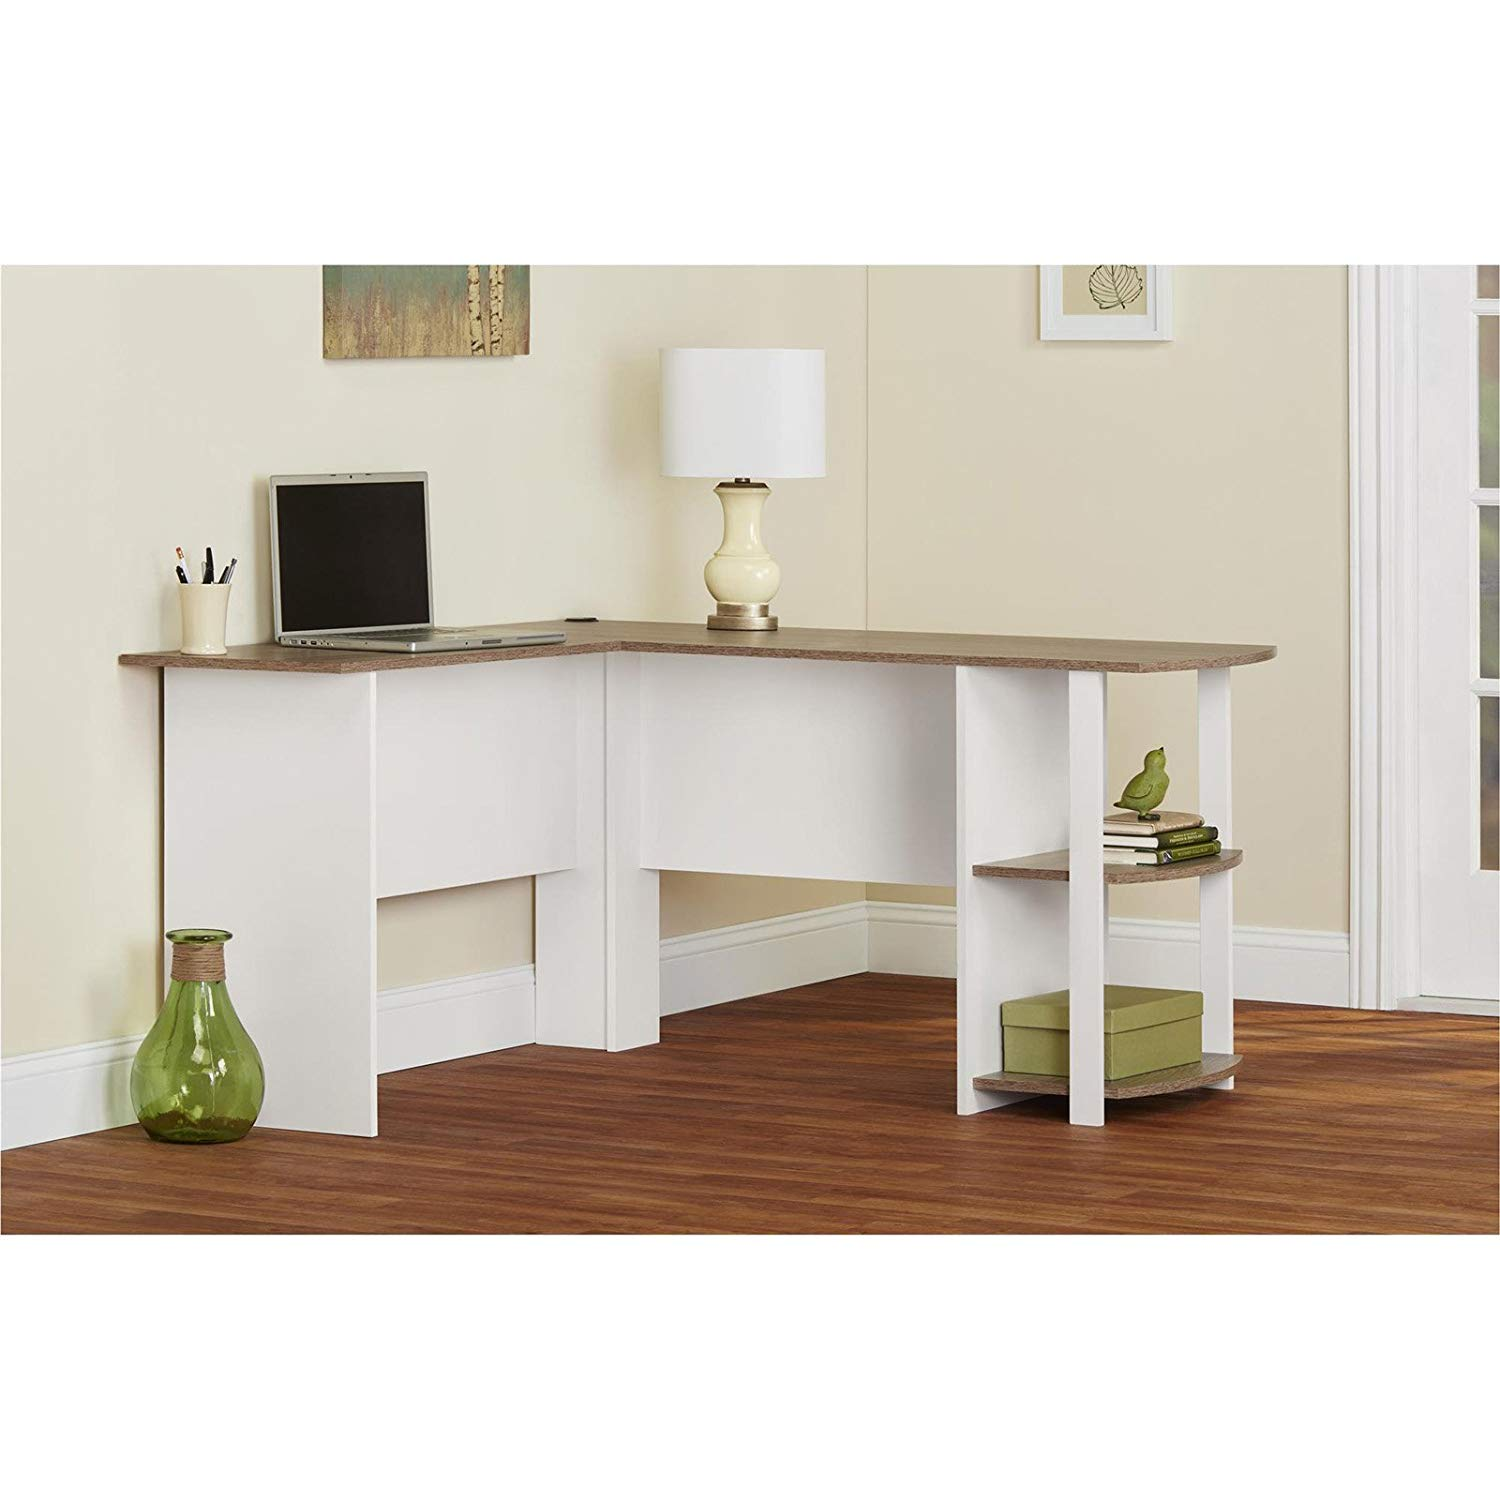 White/Sonoma Oak L-Shaped Desk with Side Storage, 2 Open Bookshelves, Made from Laminated MDF and Particleboard, Office, Home Furniture, Bundle with Our Expert Guide with Tips for Home Arrangement